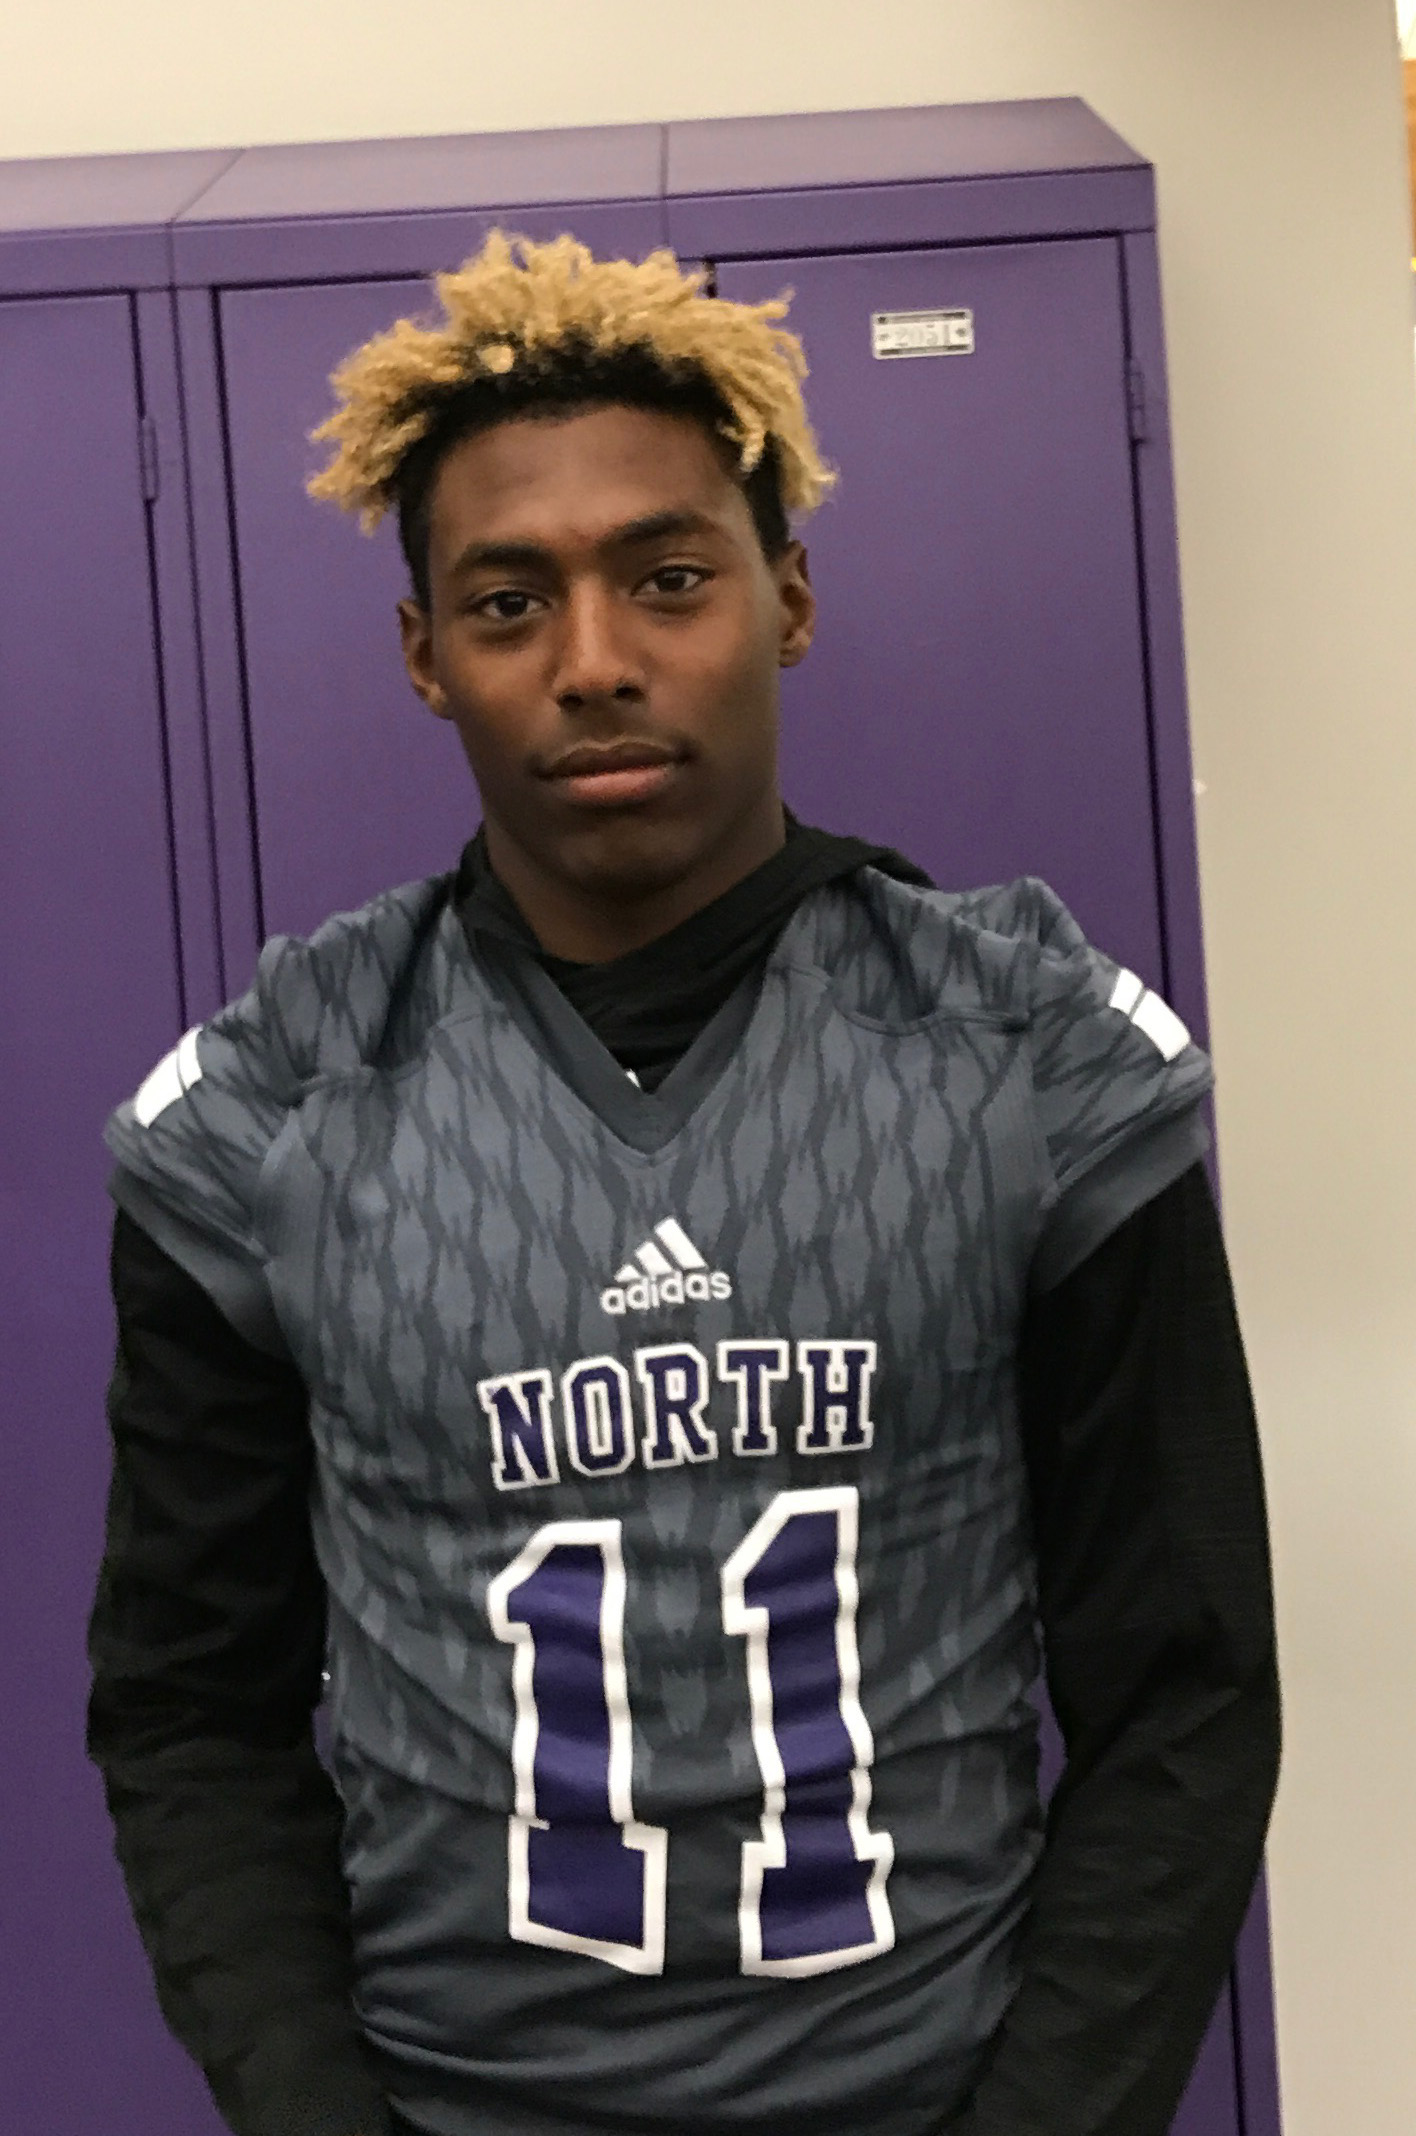 The St.Louis Post Dispatch recently named senior wider receiver and defensive back Jason Hawkins Player of the Week. His recent performance is a rarity, scoring four touchdowns in every aspect of the game.